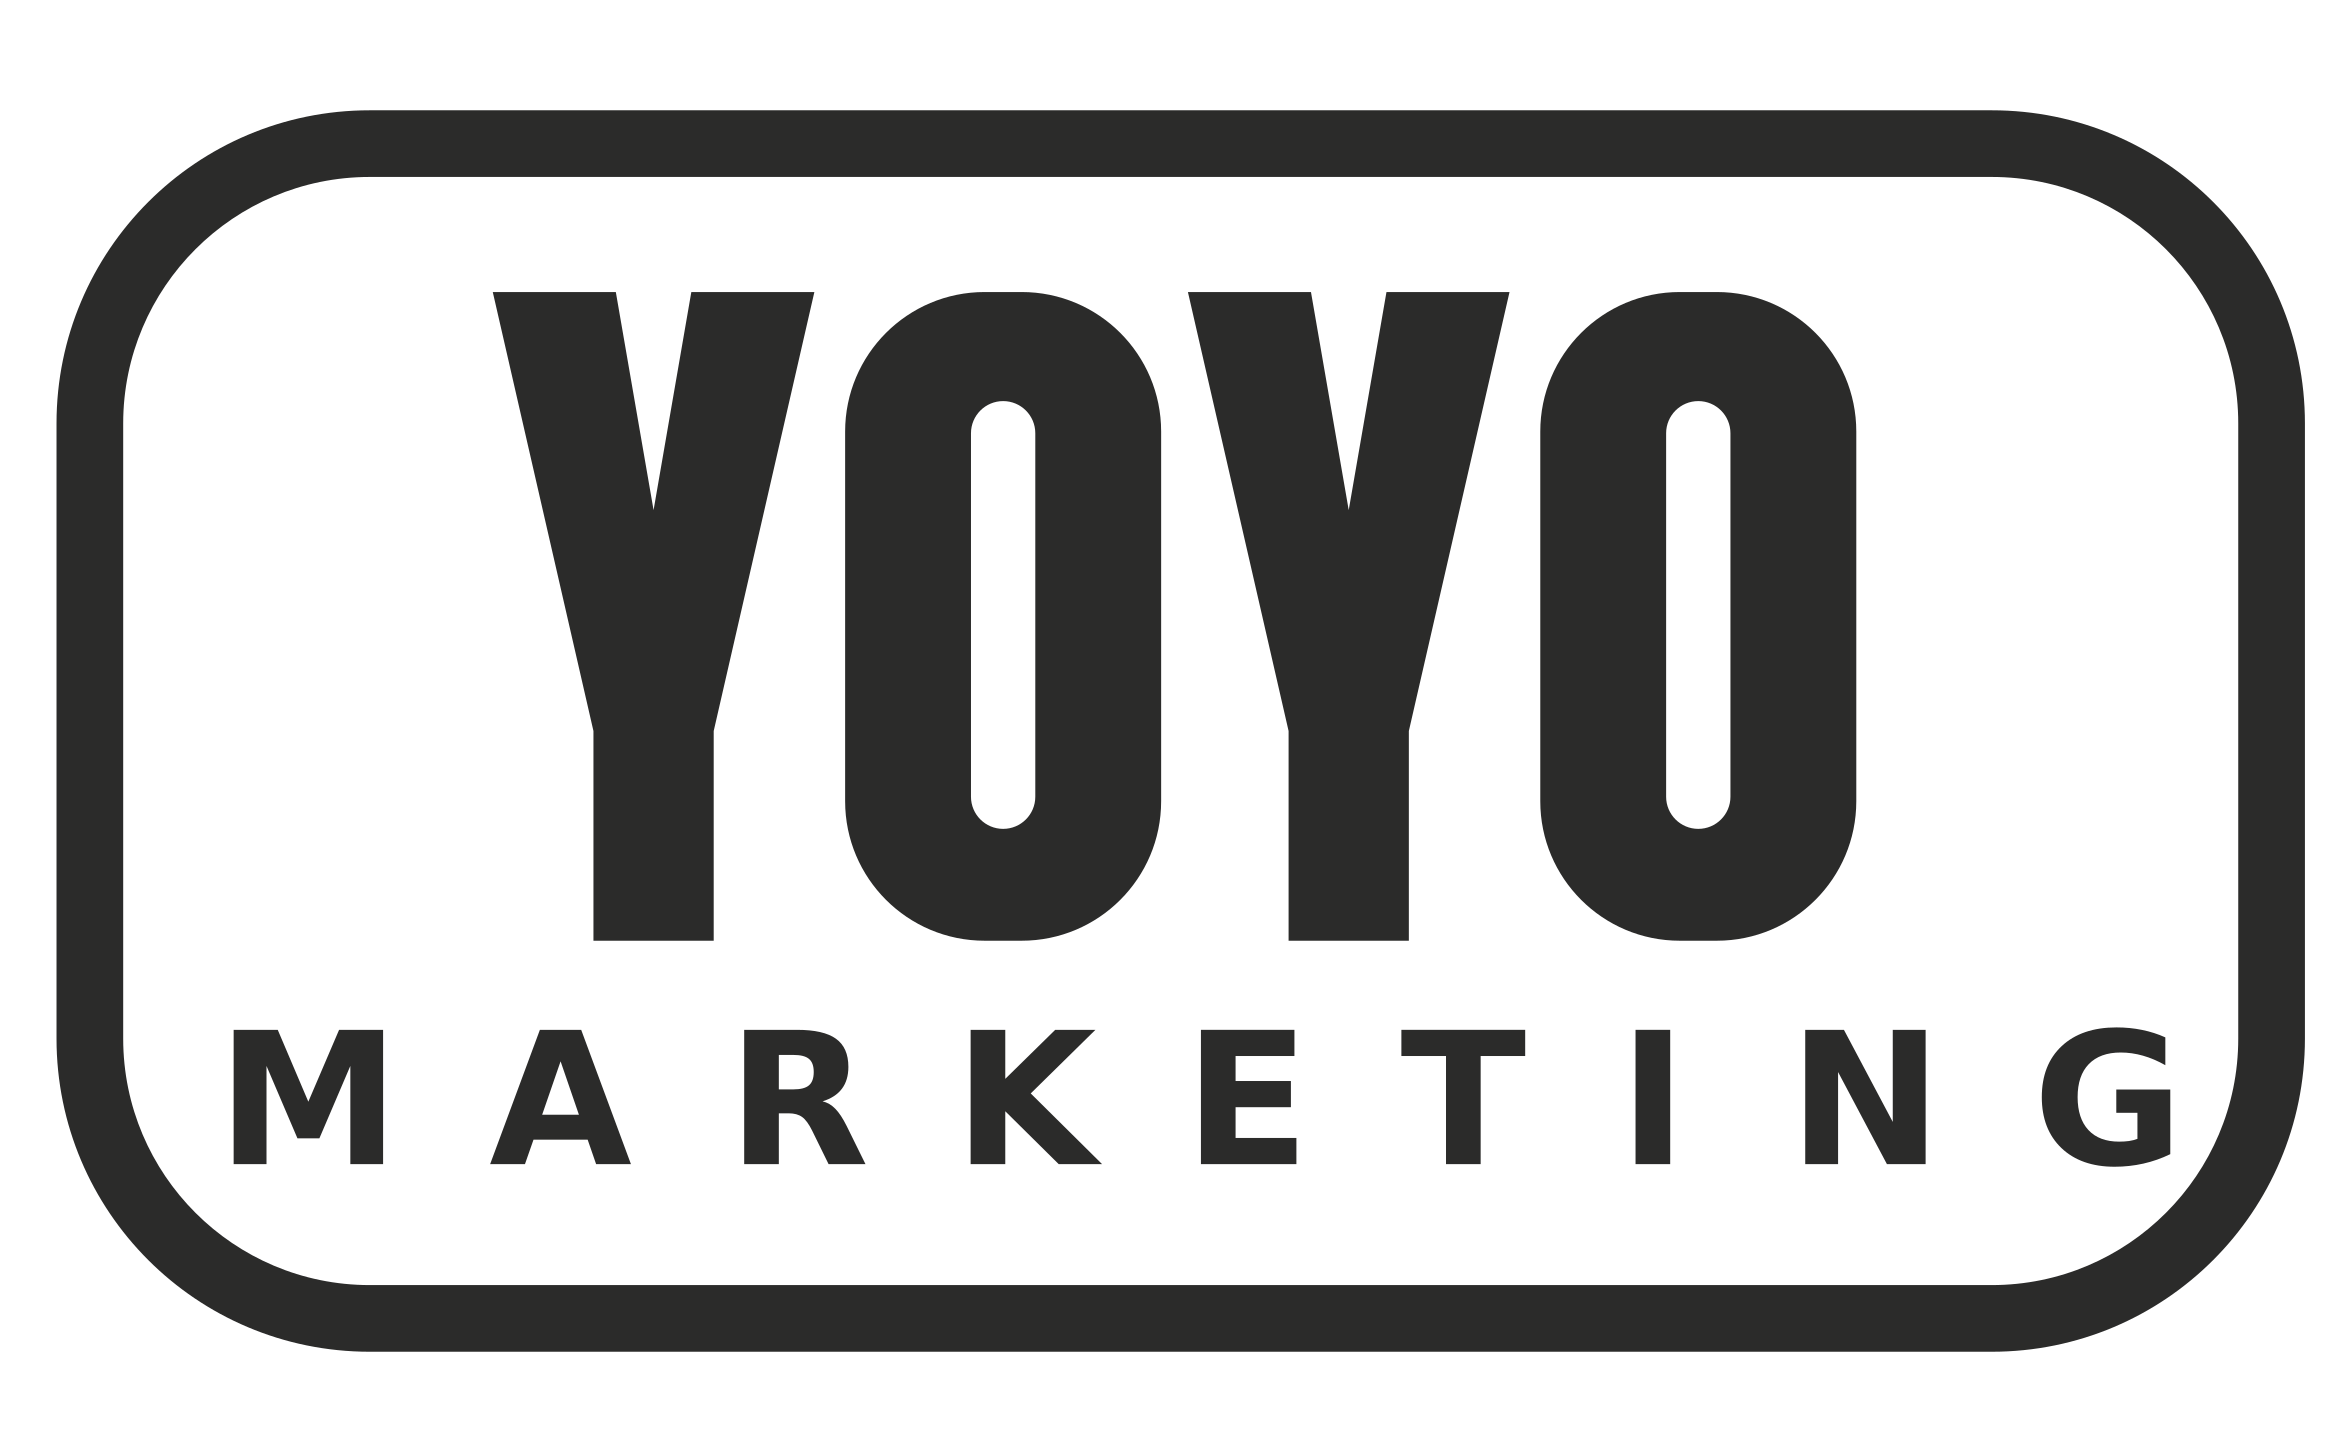 YOYO Marketing